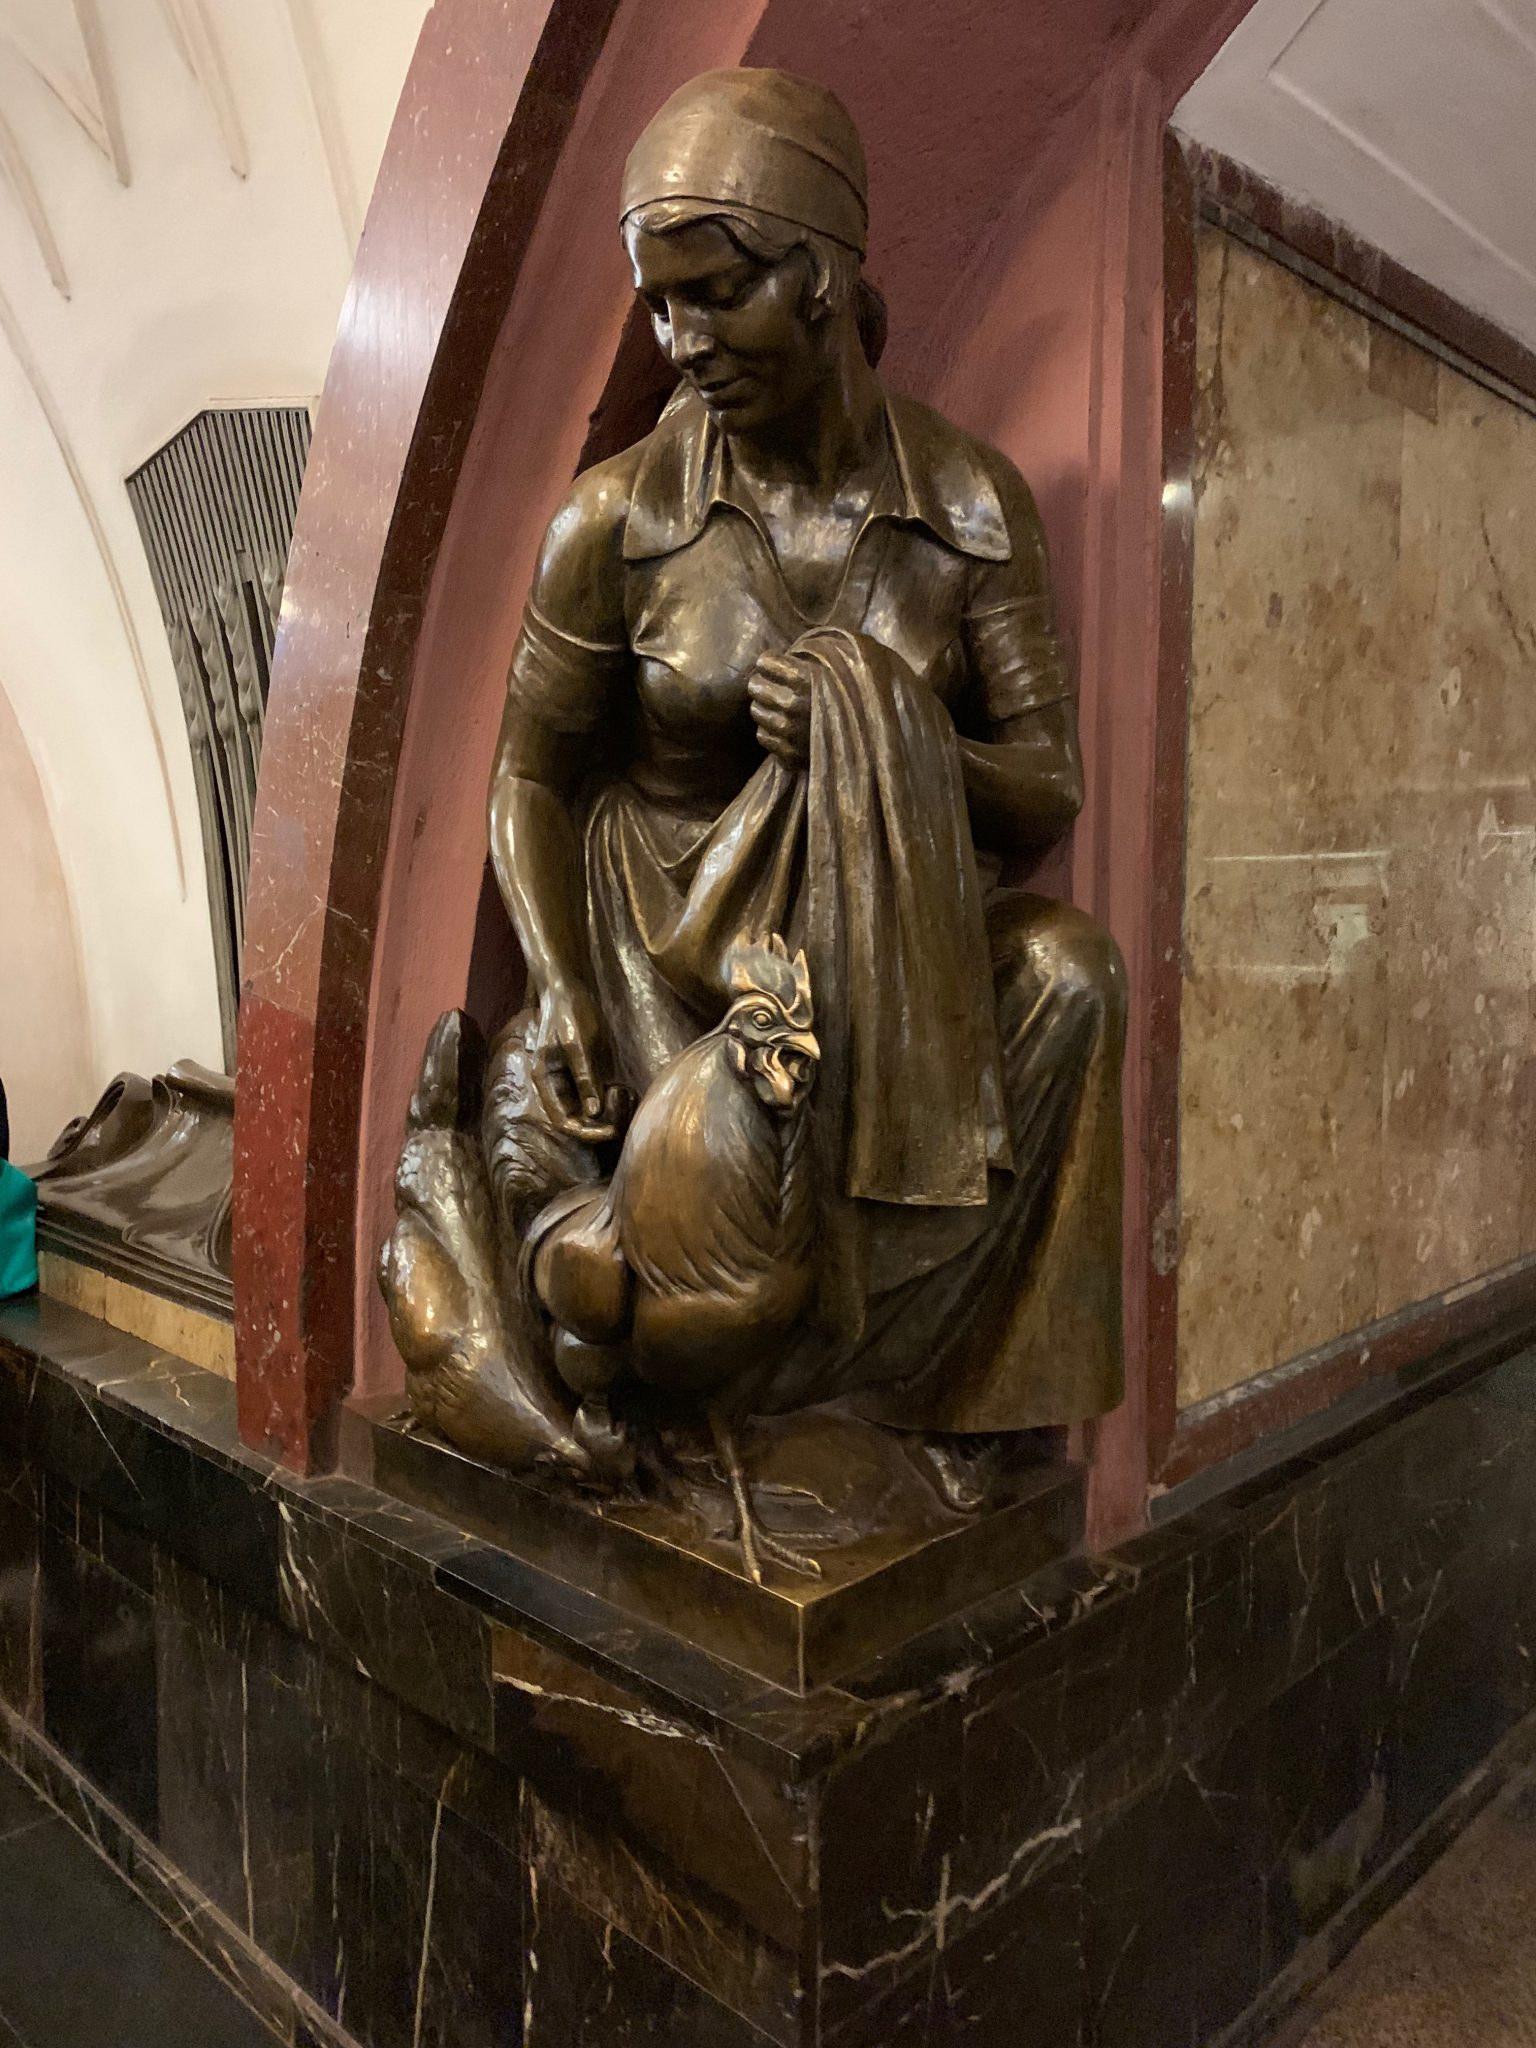 Moscow Metro Farm Girl Sculpture